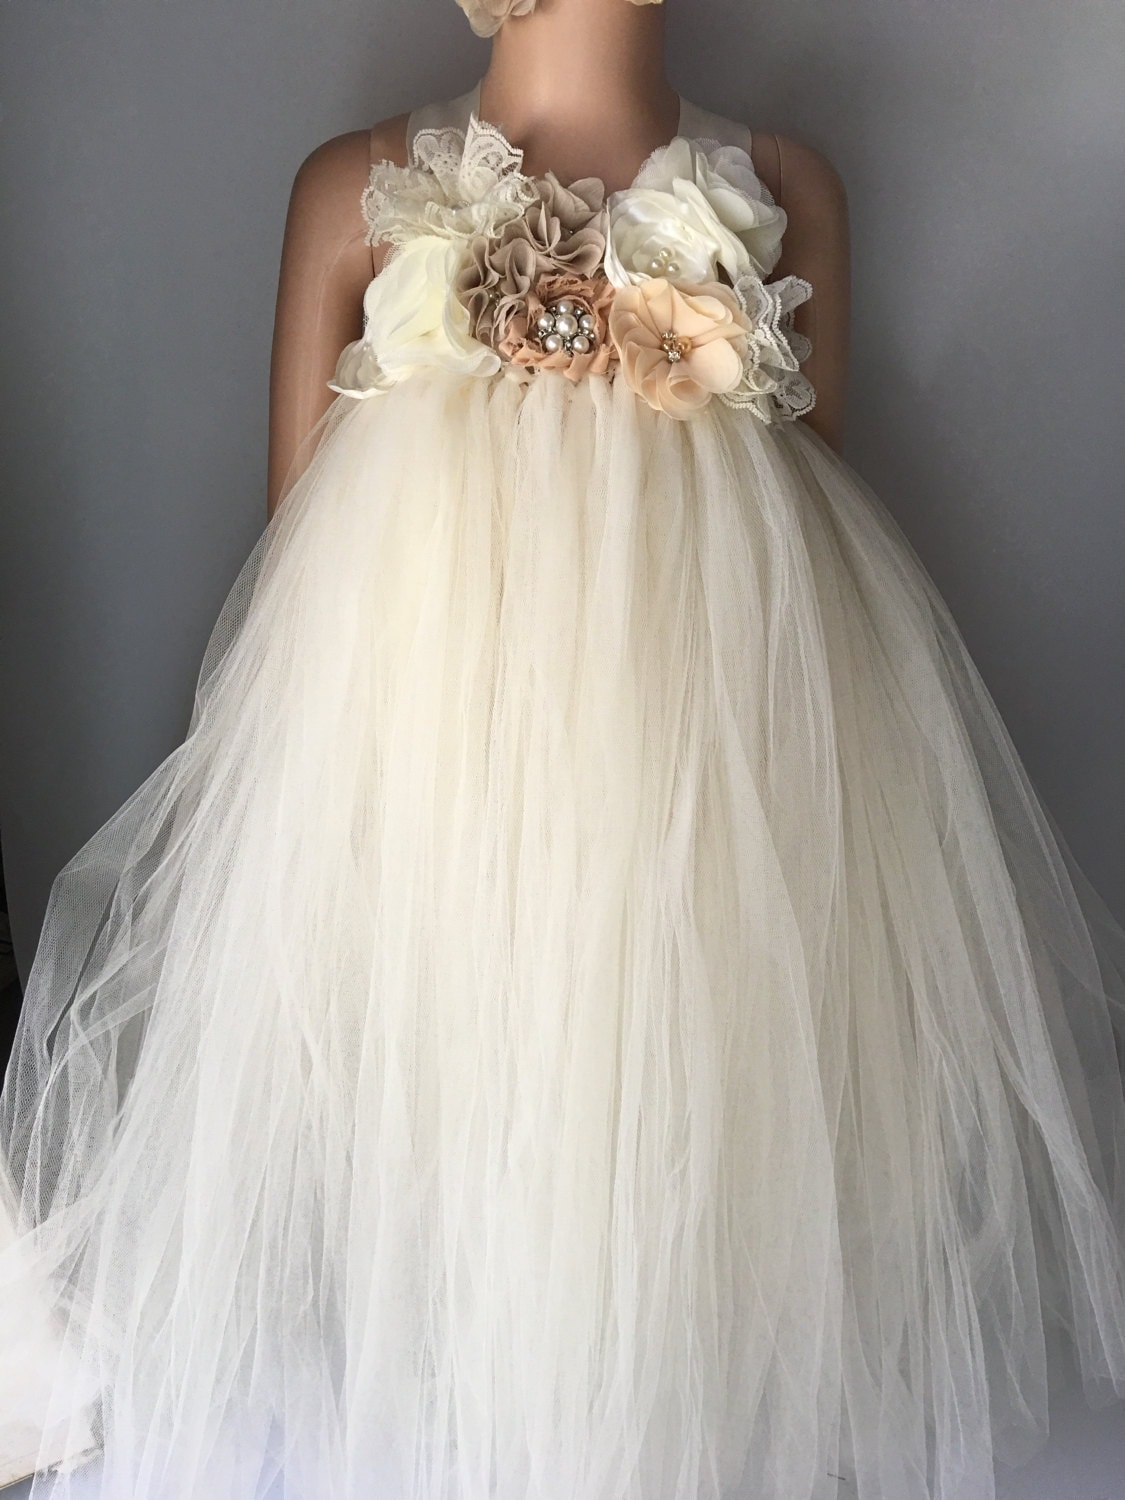 Rustic Ivory Champagne Flower Girl Dress Flower Girl Tutu Dress